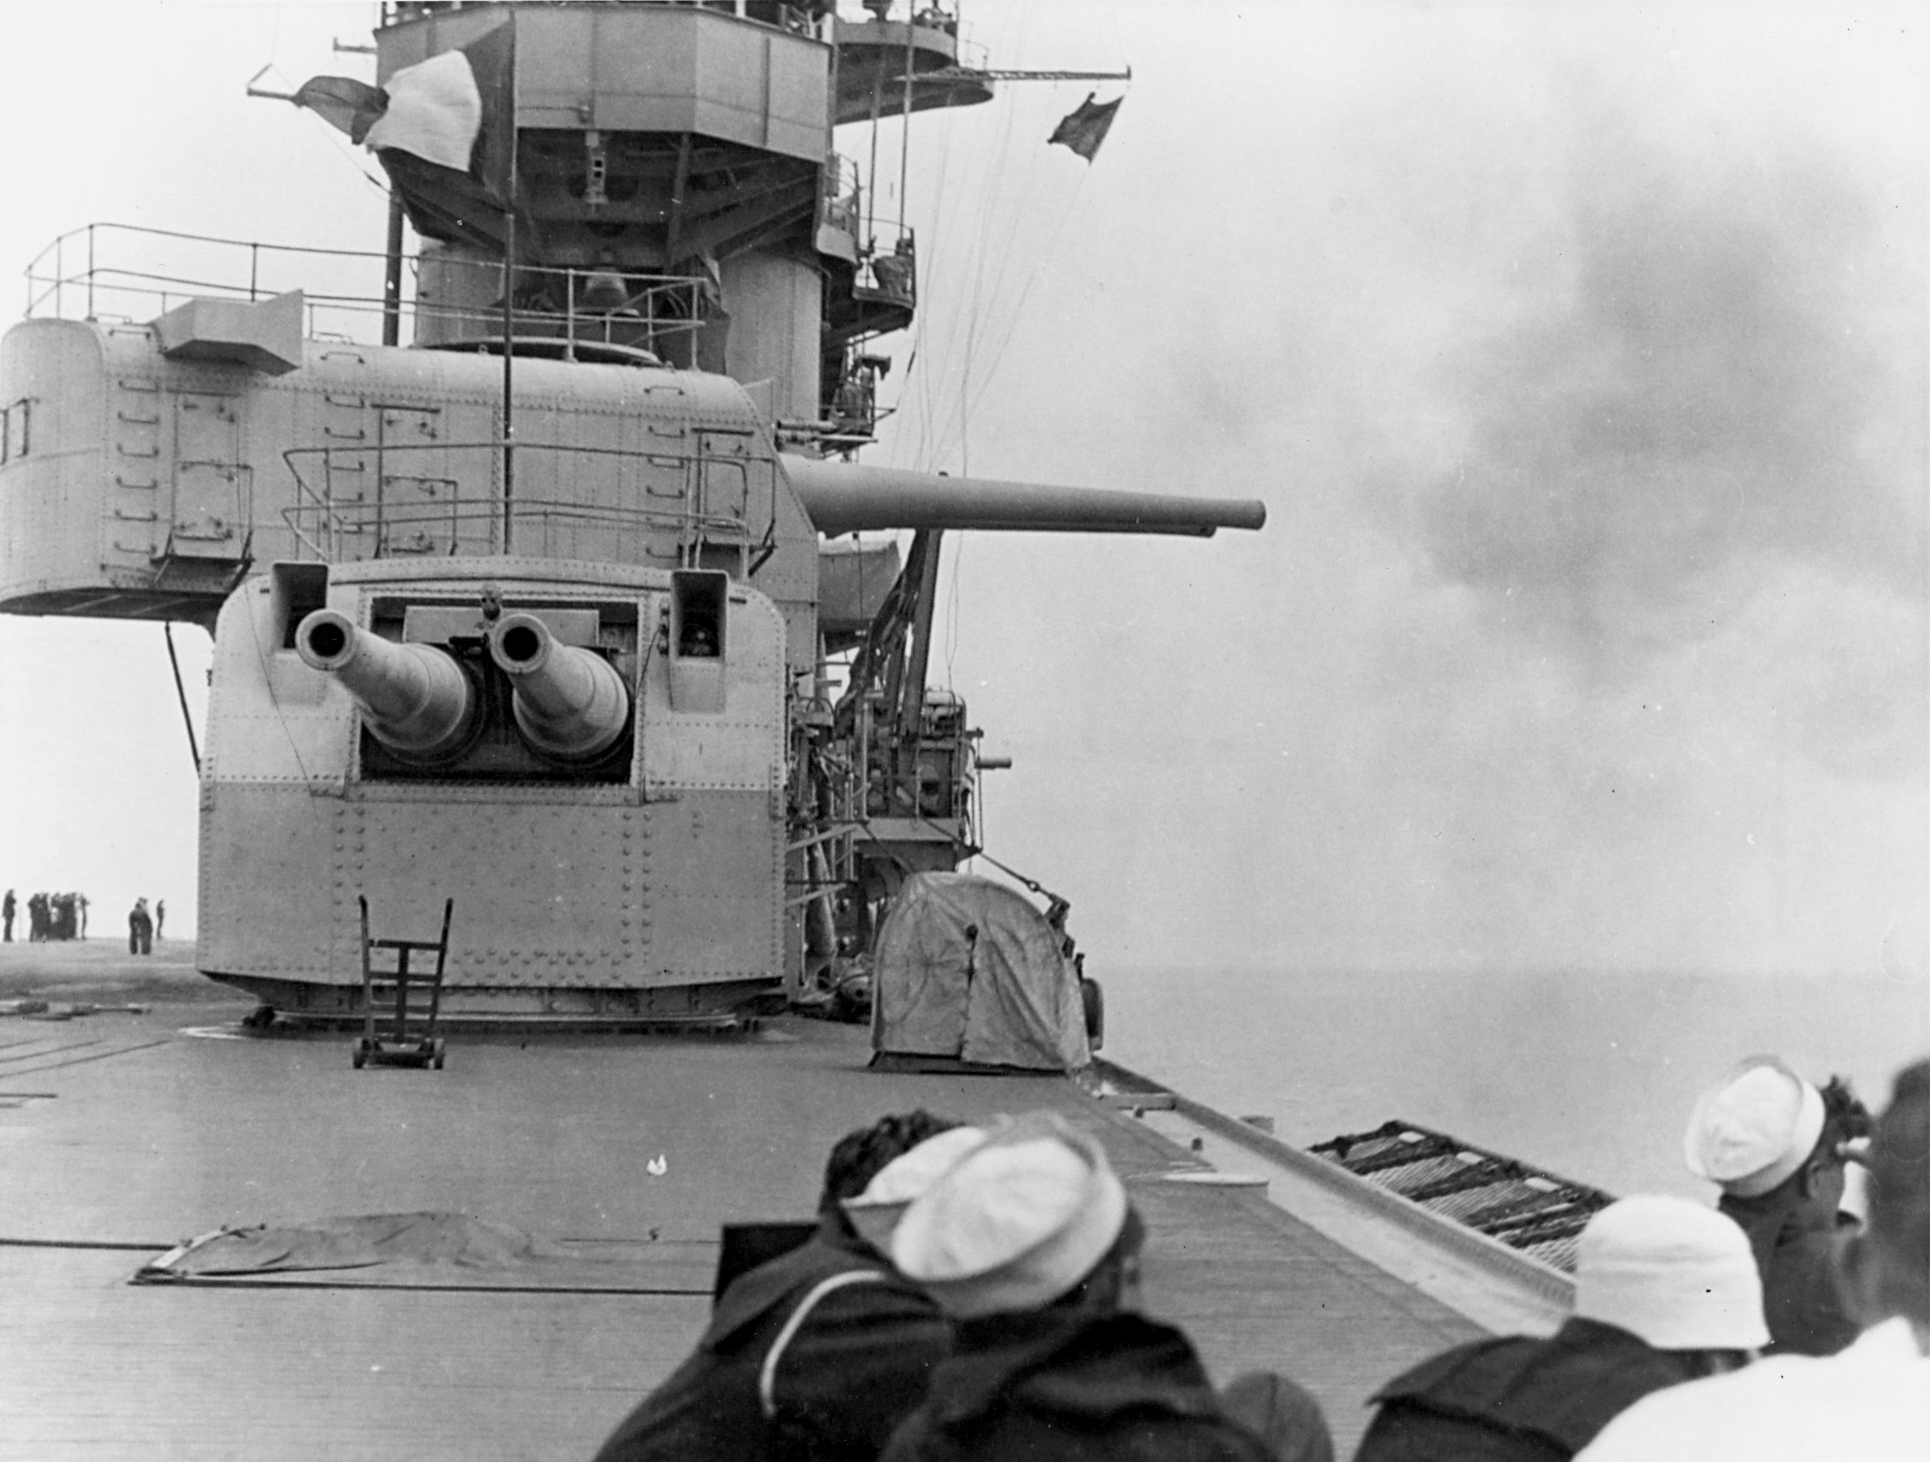 USS_Lexington_(CV-2)_firing_203mm_guns_1